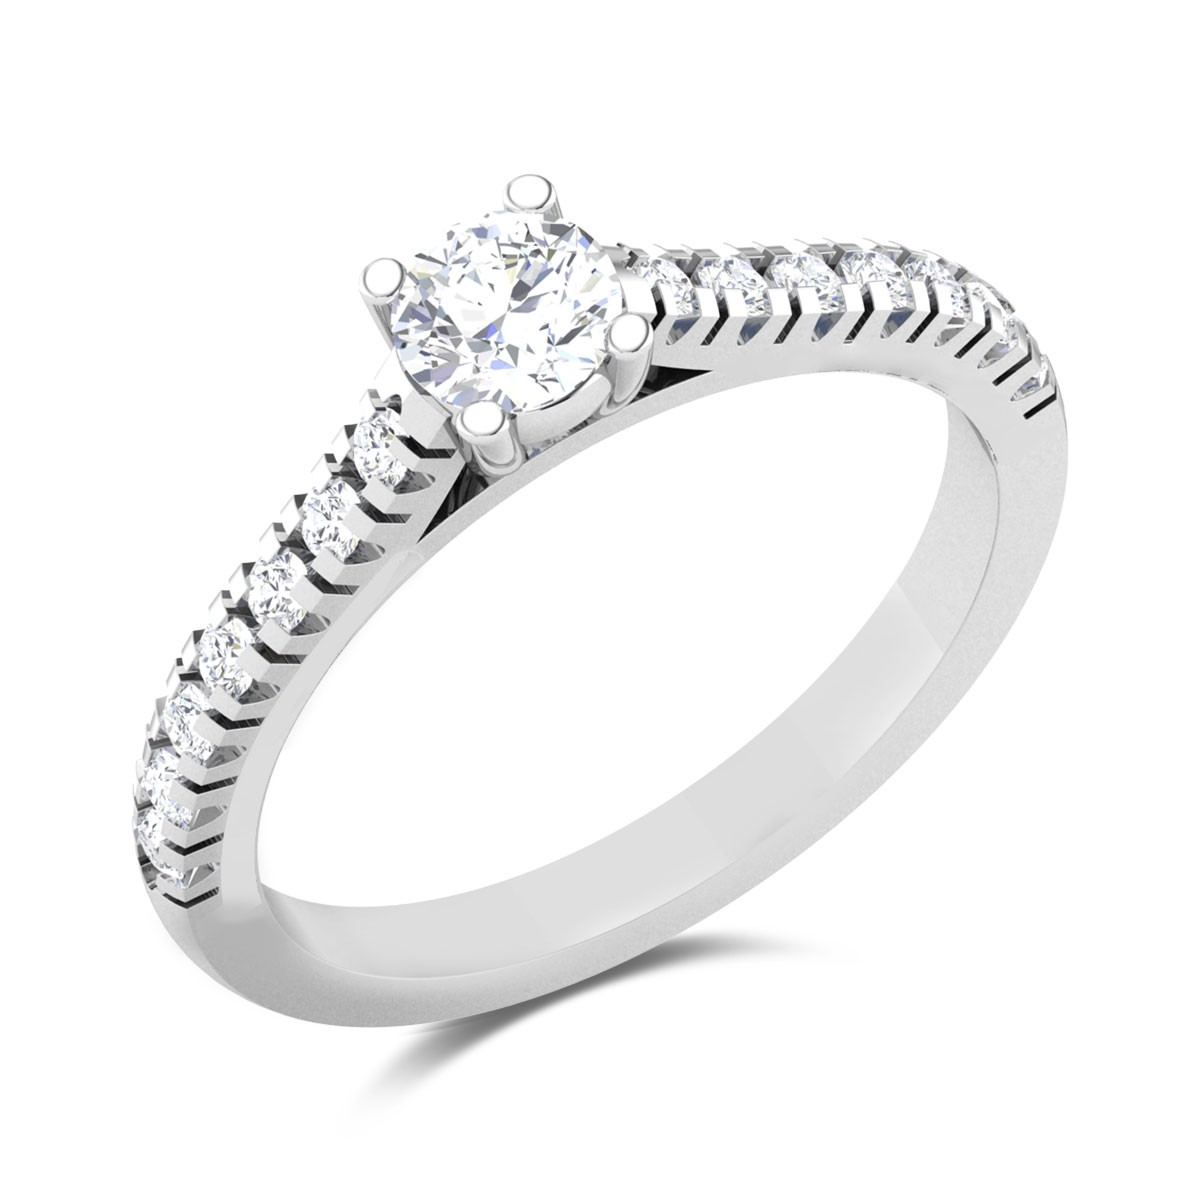 Elegant Prong Set Solitaire Ring